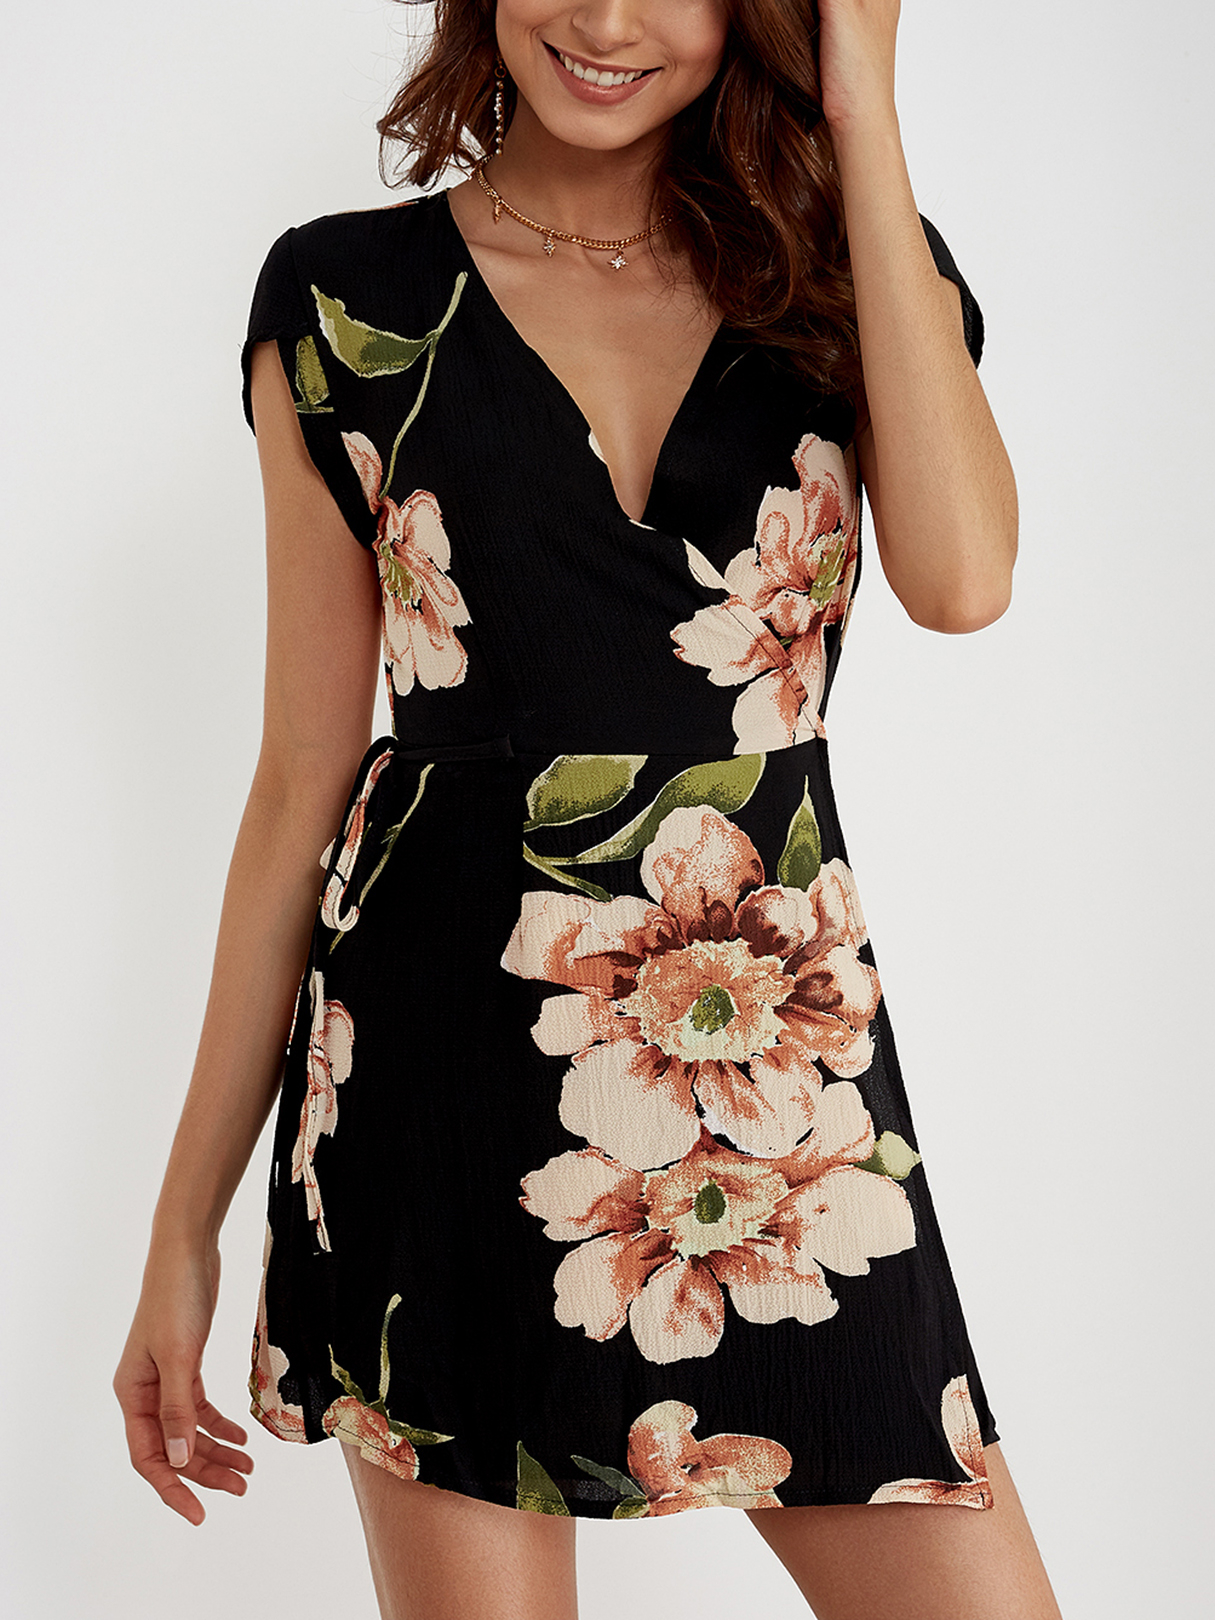 все цены на V-neck Random Floral Print Self-tie Dress онлайн